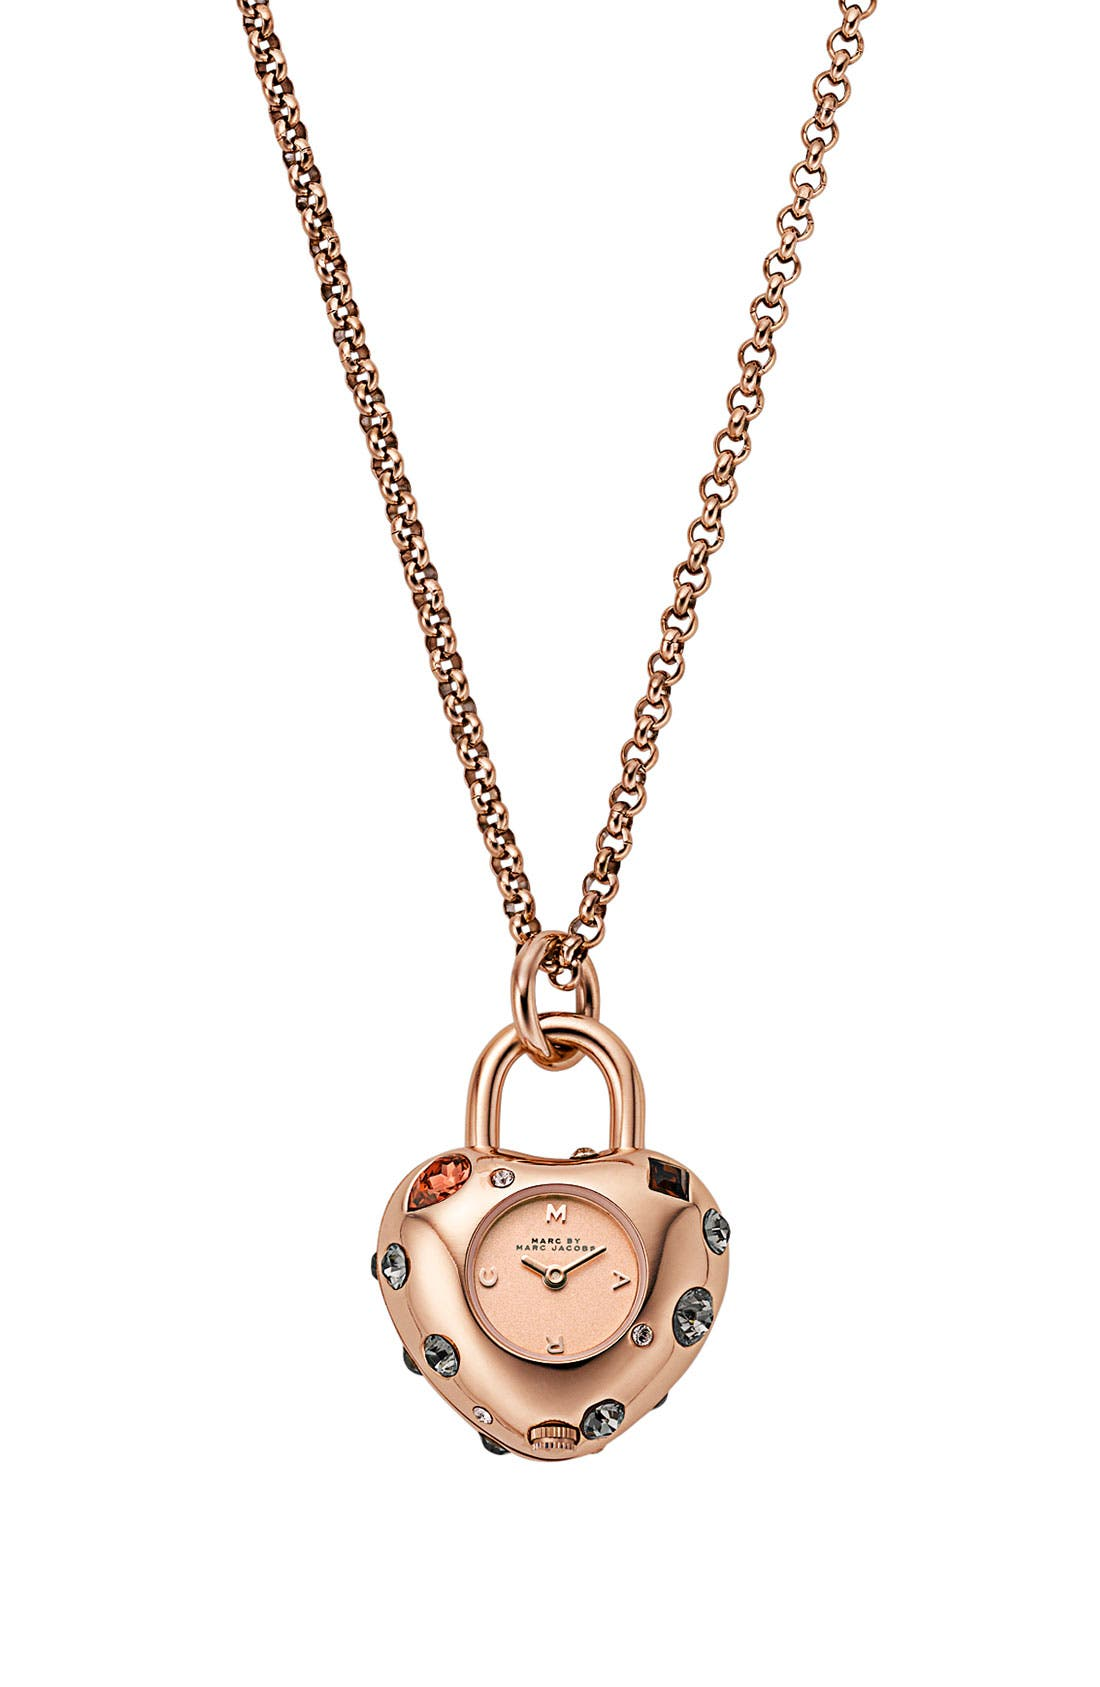 Main Image - MARC BY MARC JACOBS 'Dexter Bauble' Watch Necklace